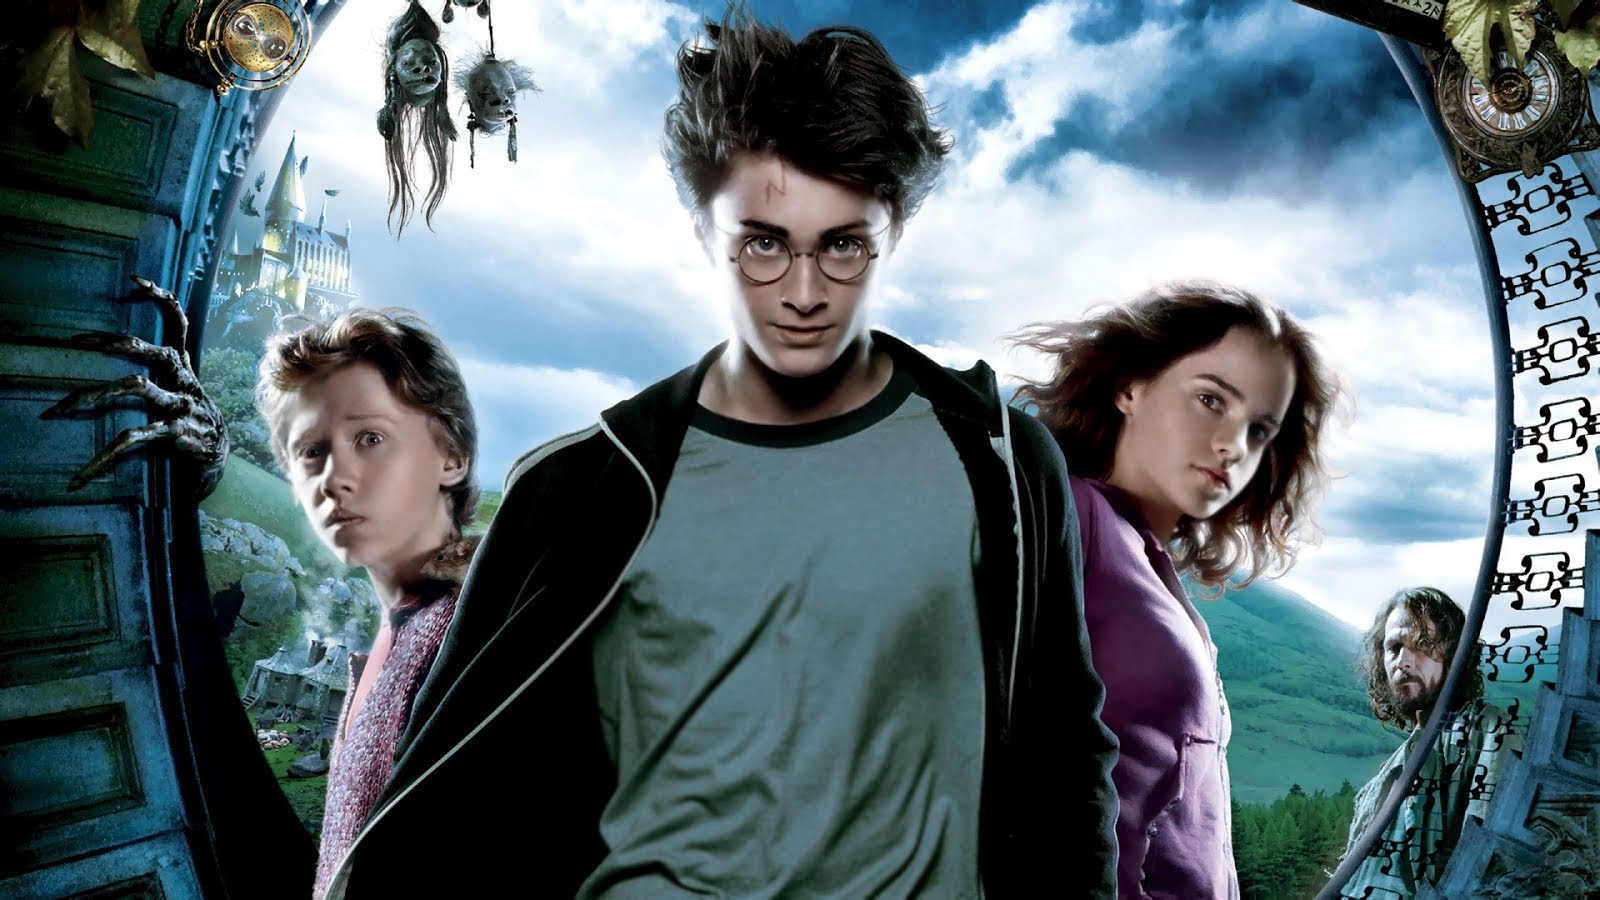 Must see Wallpaper Harry Potter Square - hp-and-the-prisoner-of-azkaban  Graphic_587444.jpg